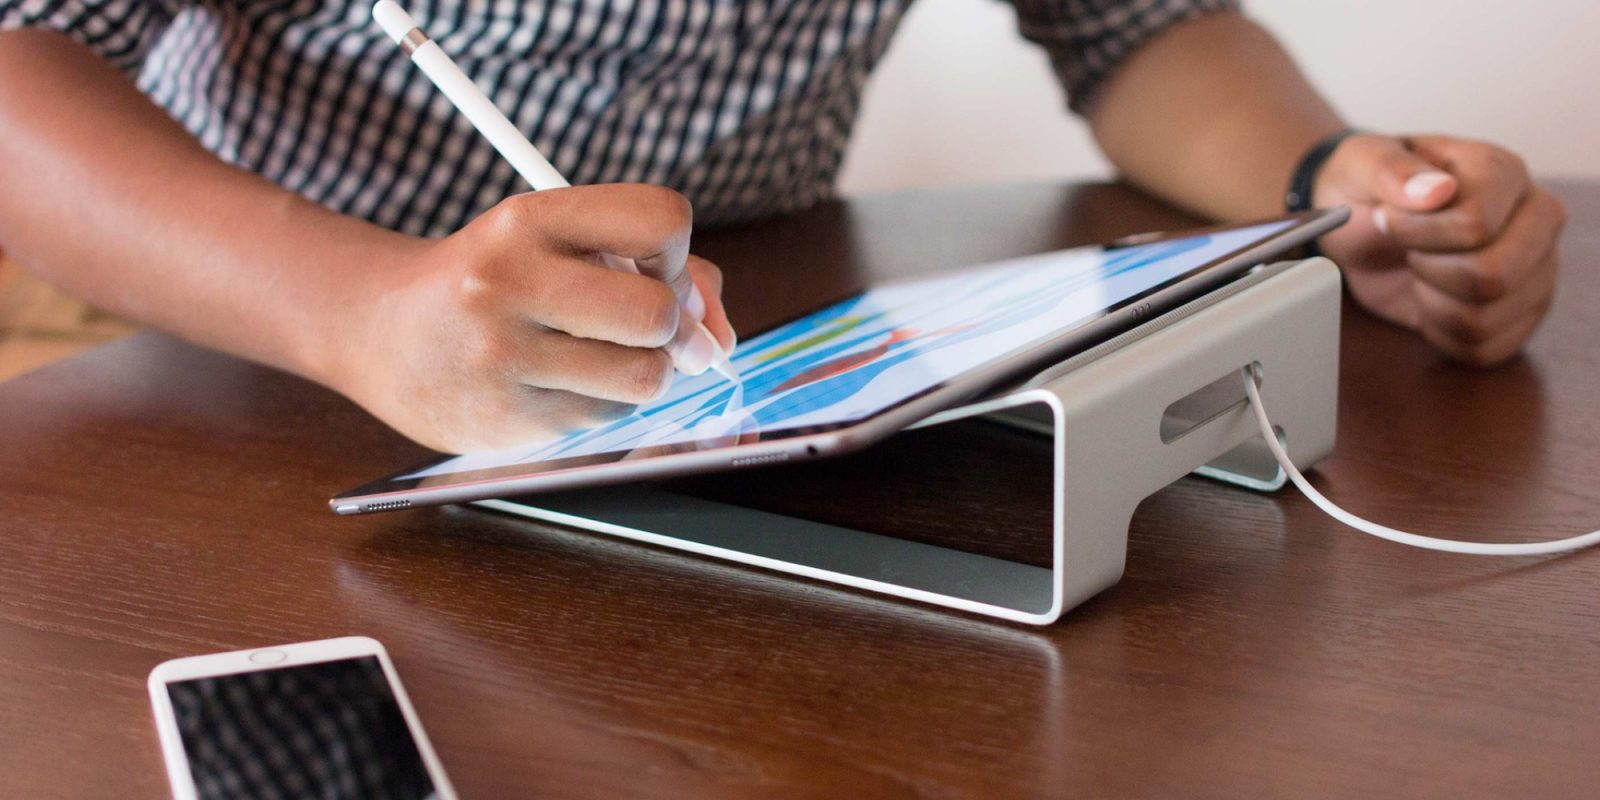 Prop up a MacBook or iPad with Twelve South's ParcSlope Stand at $40 (33% off)